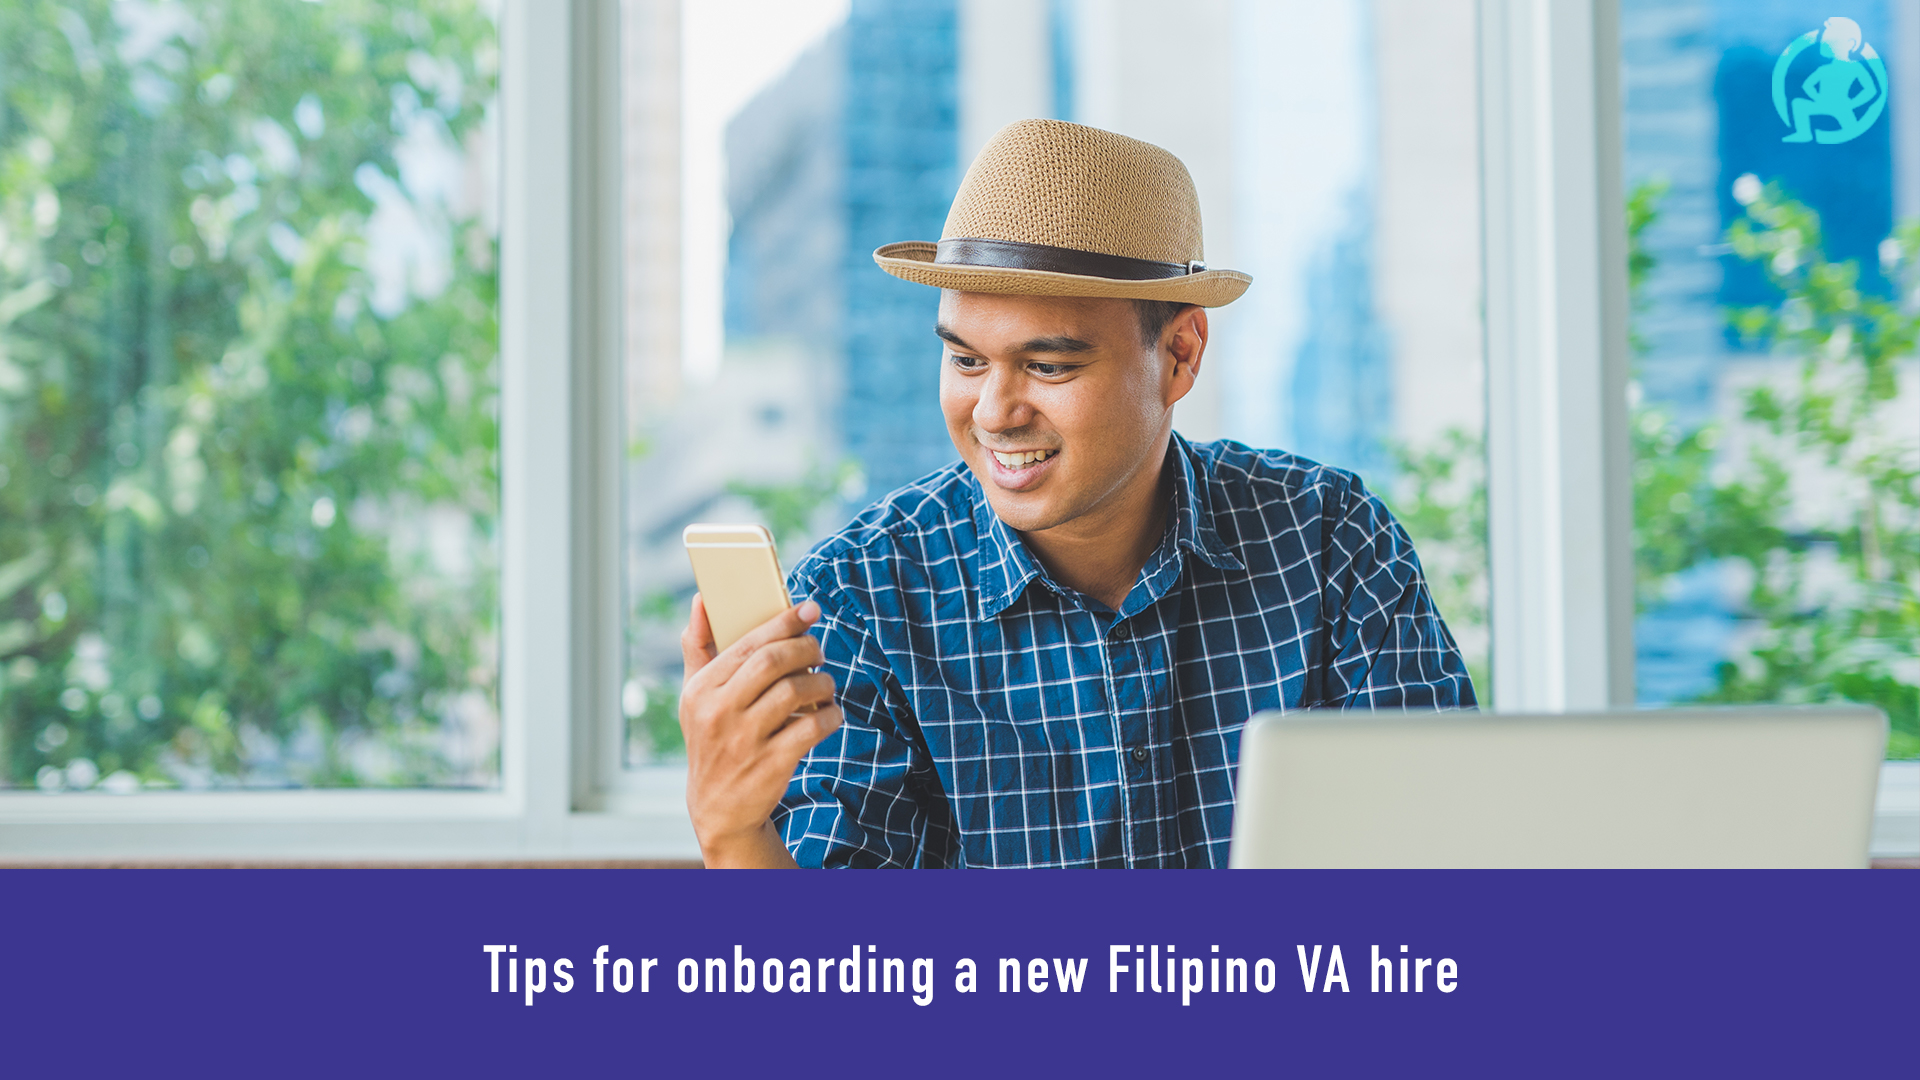 454 60 Tips for onboarding a new Filipino VA hire Feature